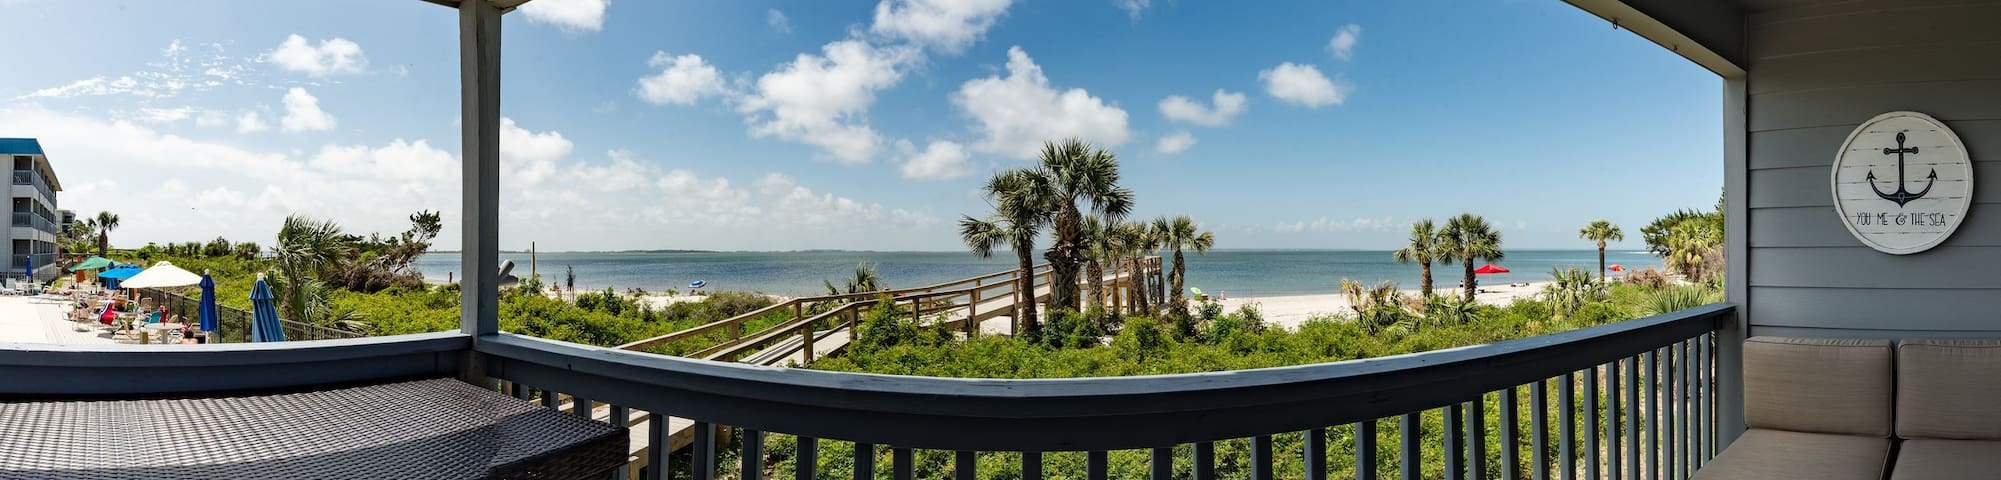 Beachfront condo with excellent views of water, dolphins and shrimp boats! This view is from the balcony and main windows in the living room